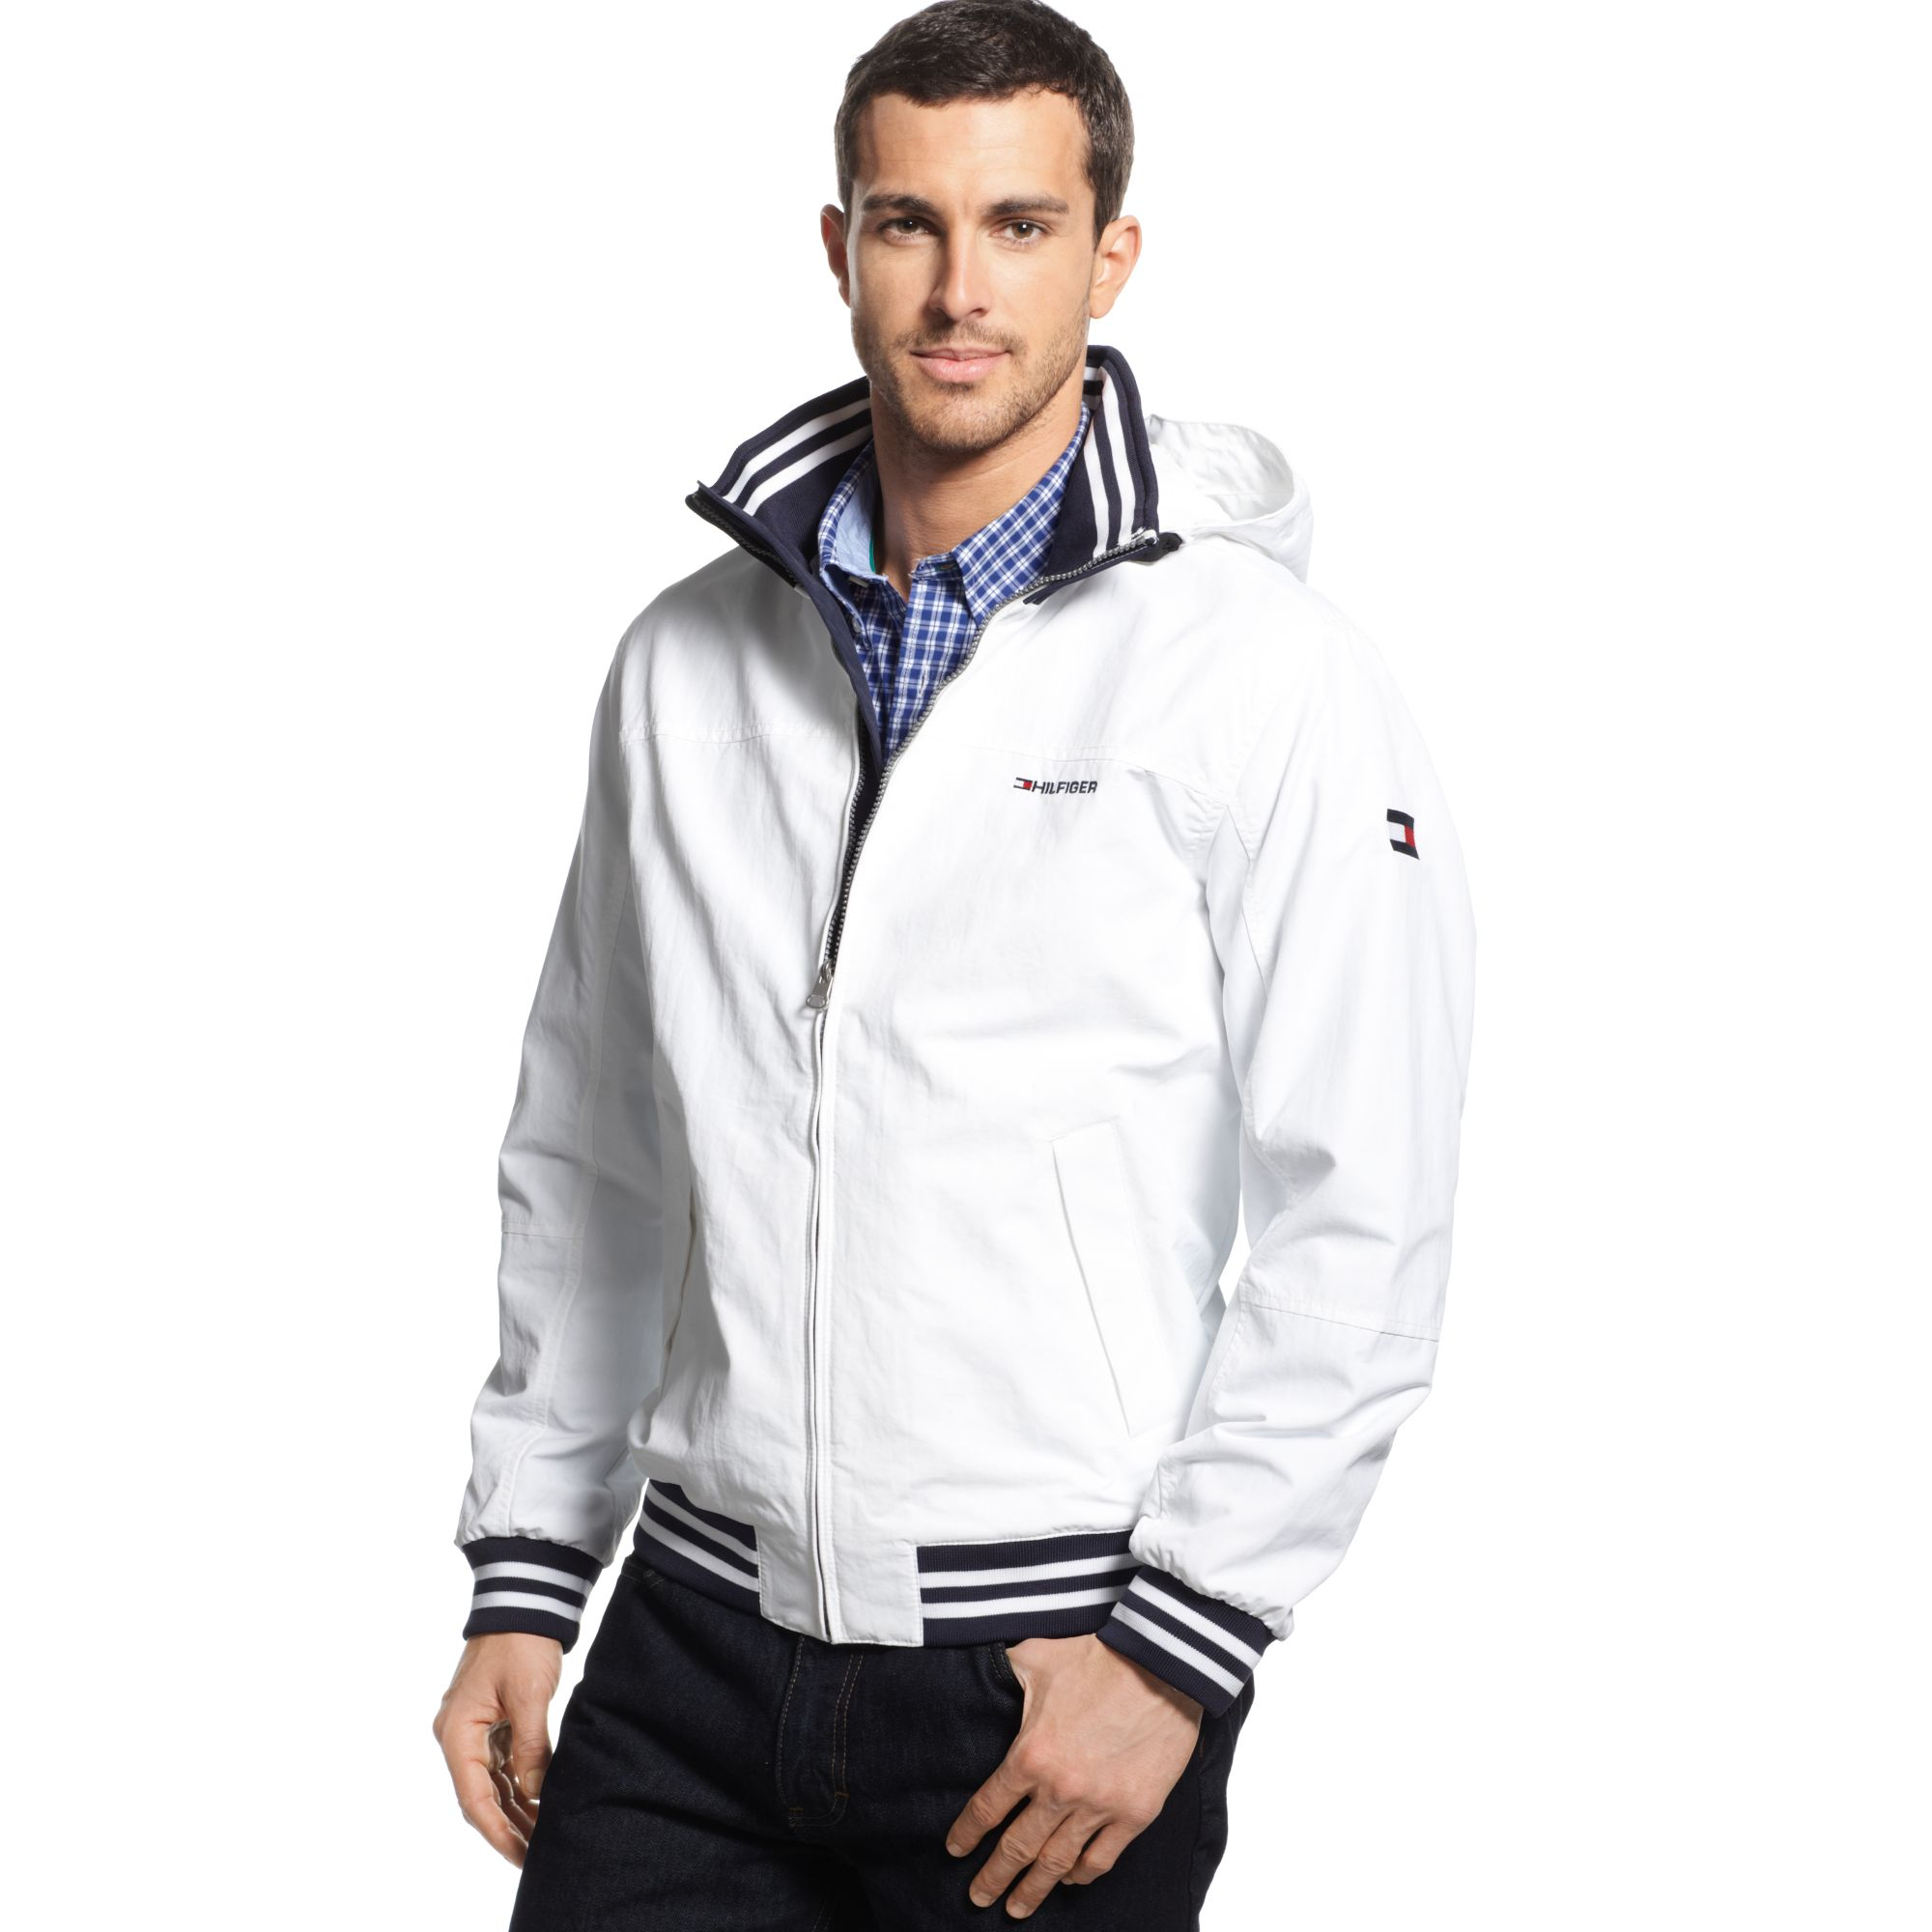 tommy hilfiger team yacht jacket in white for men classic. Black Bedroom Furniture Sets. Home Design Ideas